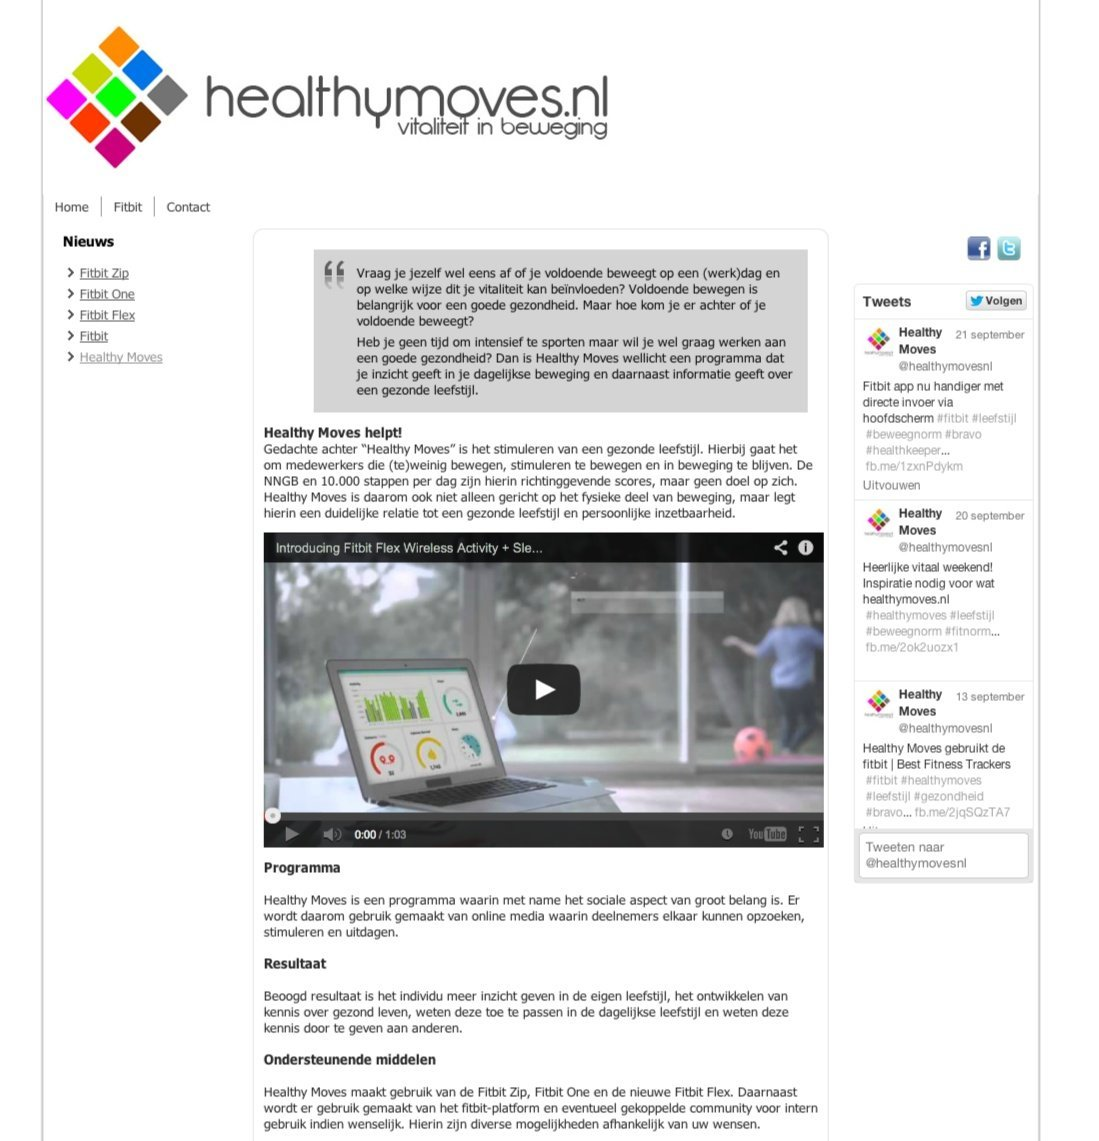 www.healthymoves.nl